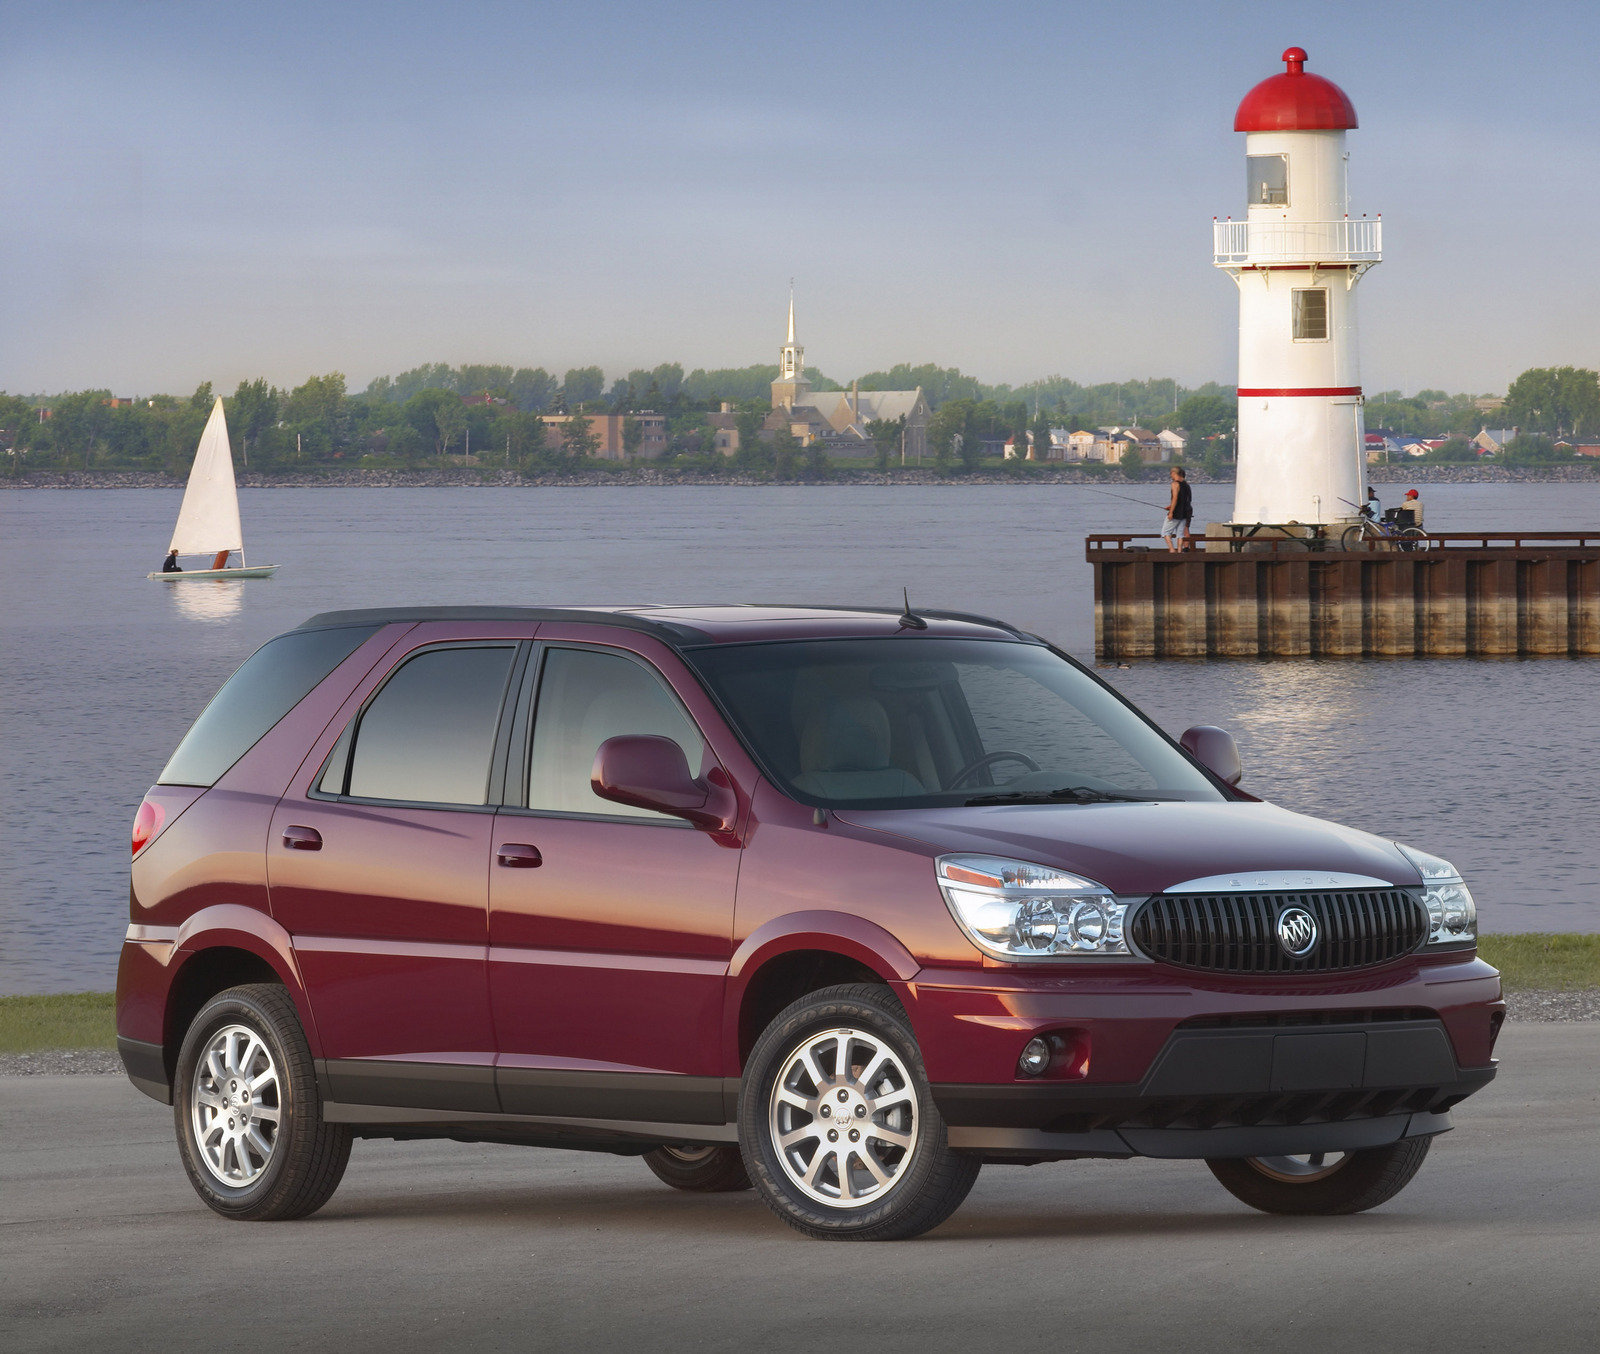 2007 Buick Rendezvous Review - Top Speed